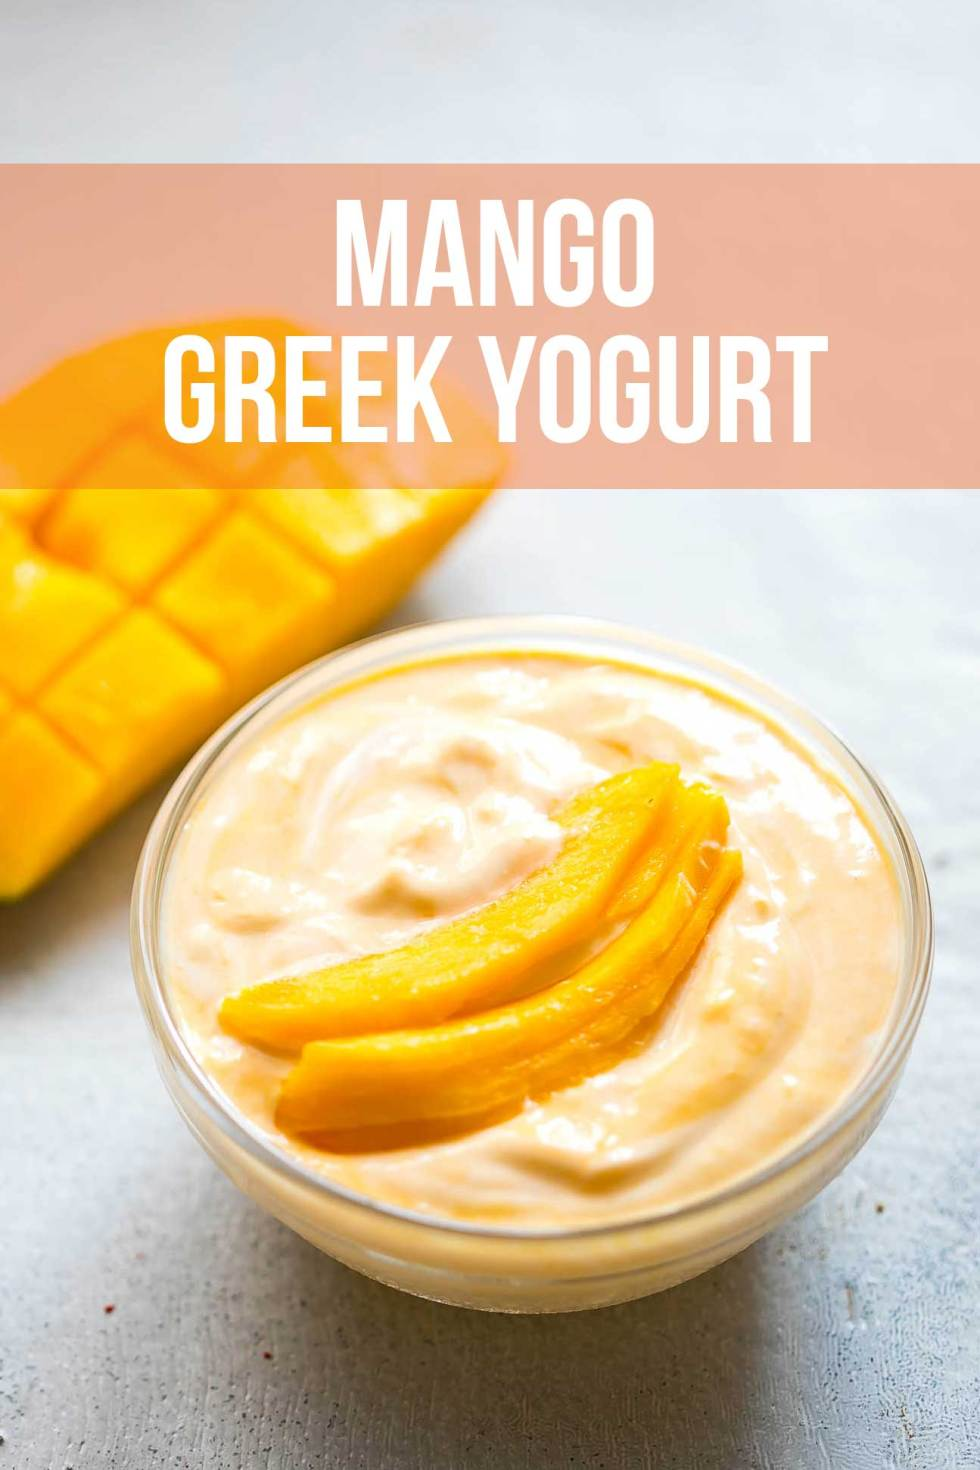 A delicious mango Greek yogurt, flavored with fresh Mango puree and honey that makes for a refreshing and healthy breakfast or evening snack. If you don't have access to fresh mango puree, frozen and thawed works just as well.